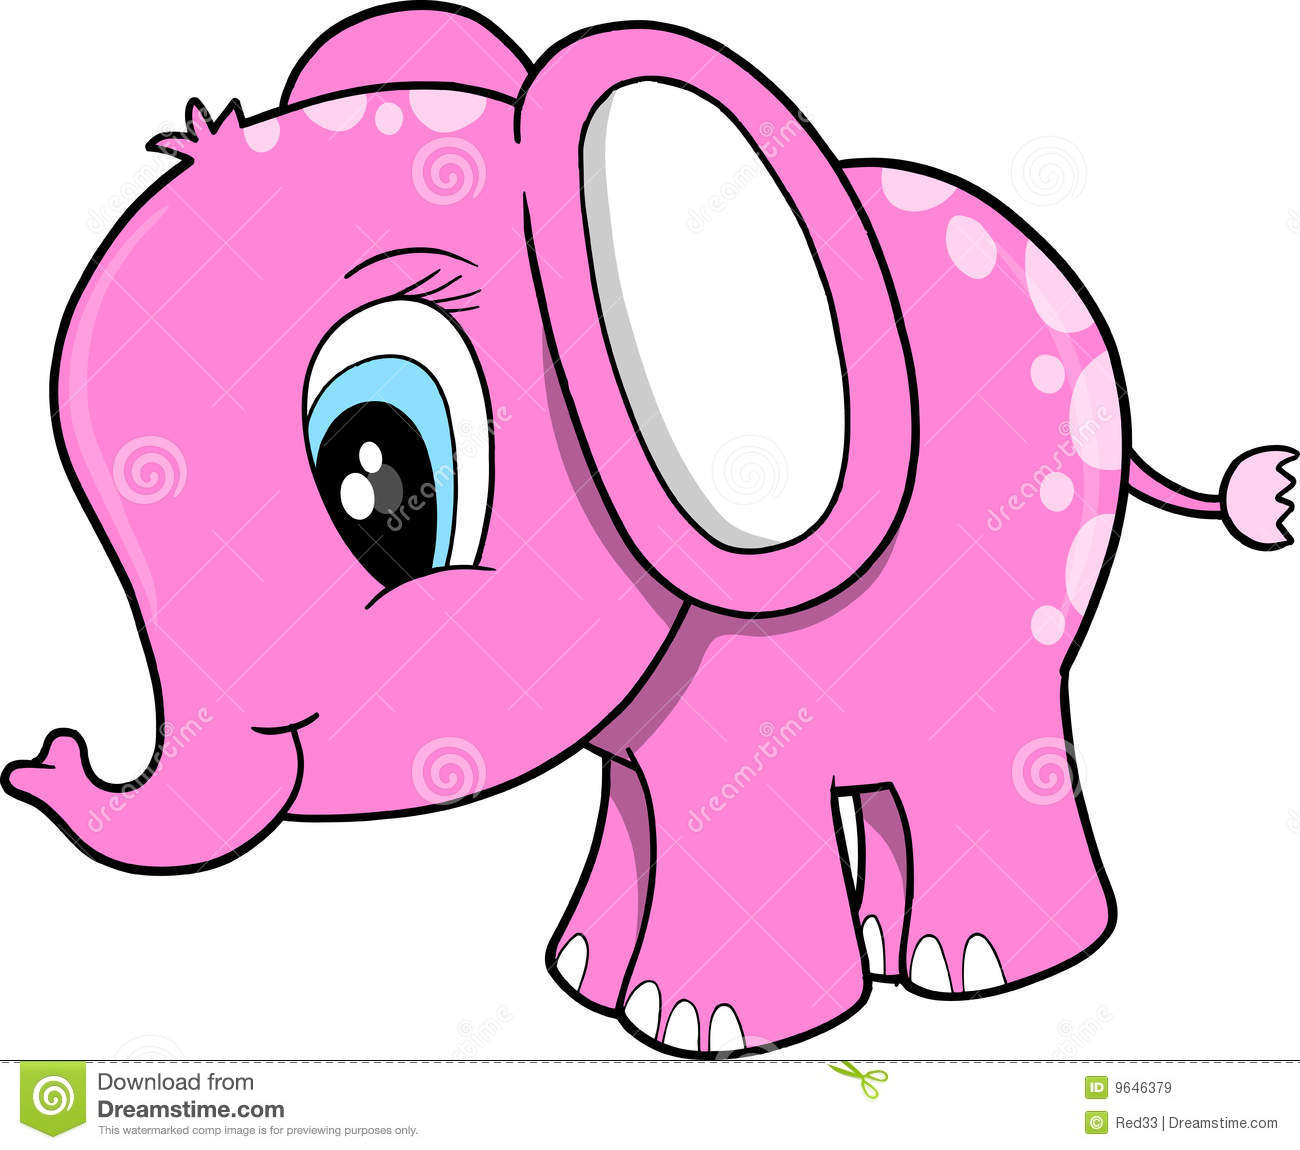 Cute Elephant Clipart Fgmisp Car Pictures